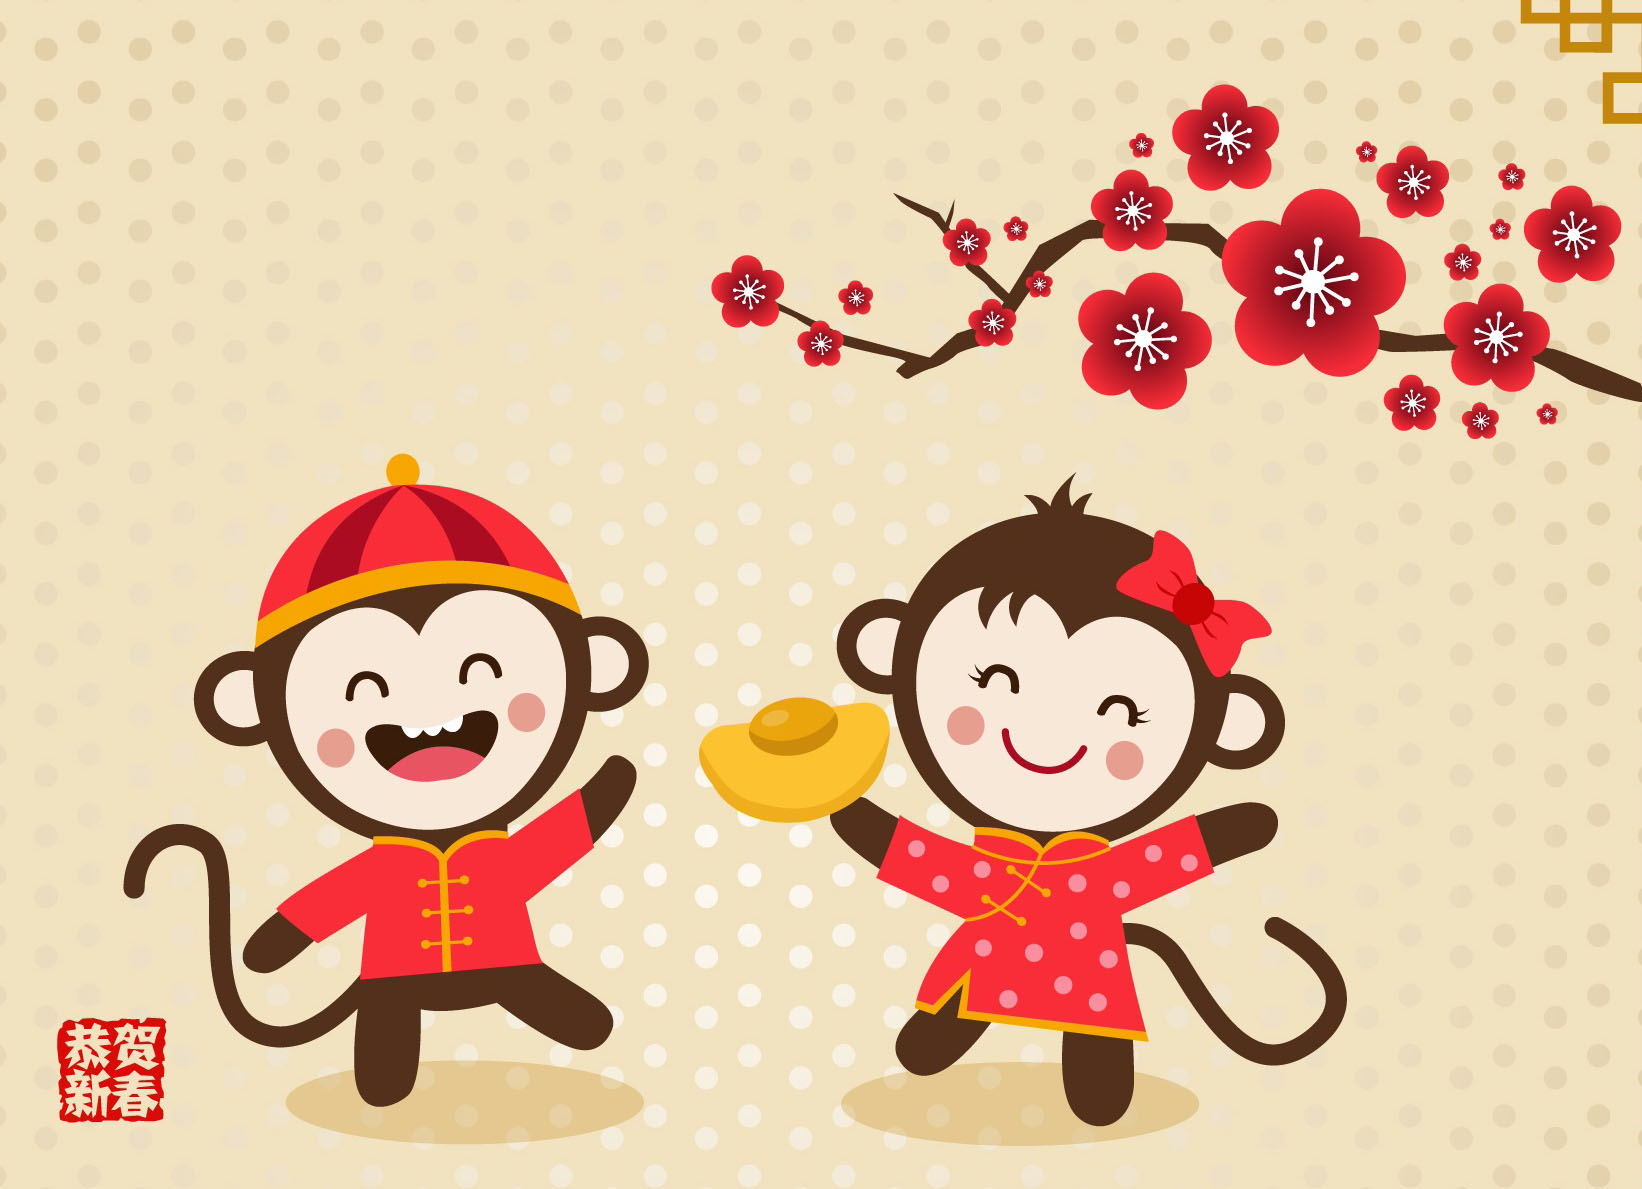 Giving birth in the year of the monkey